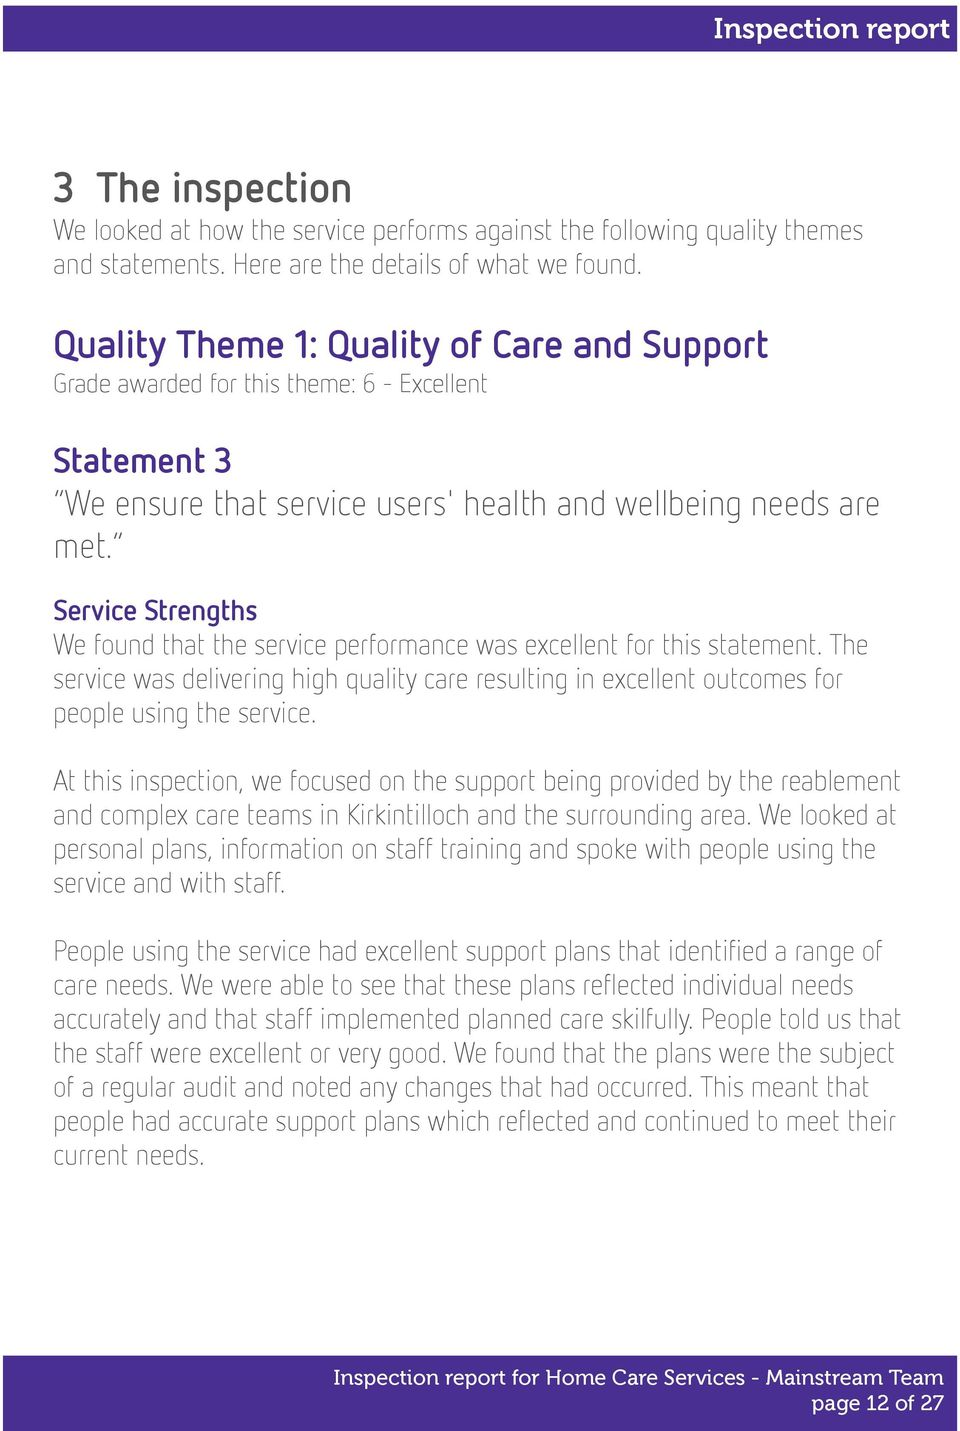 Service Strengths We found that the service performance was excellent for this statement. The service was delivering high quality care resulting in excellent outcomes for people using the service.